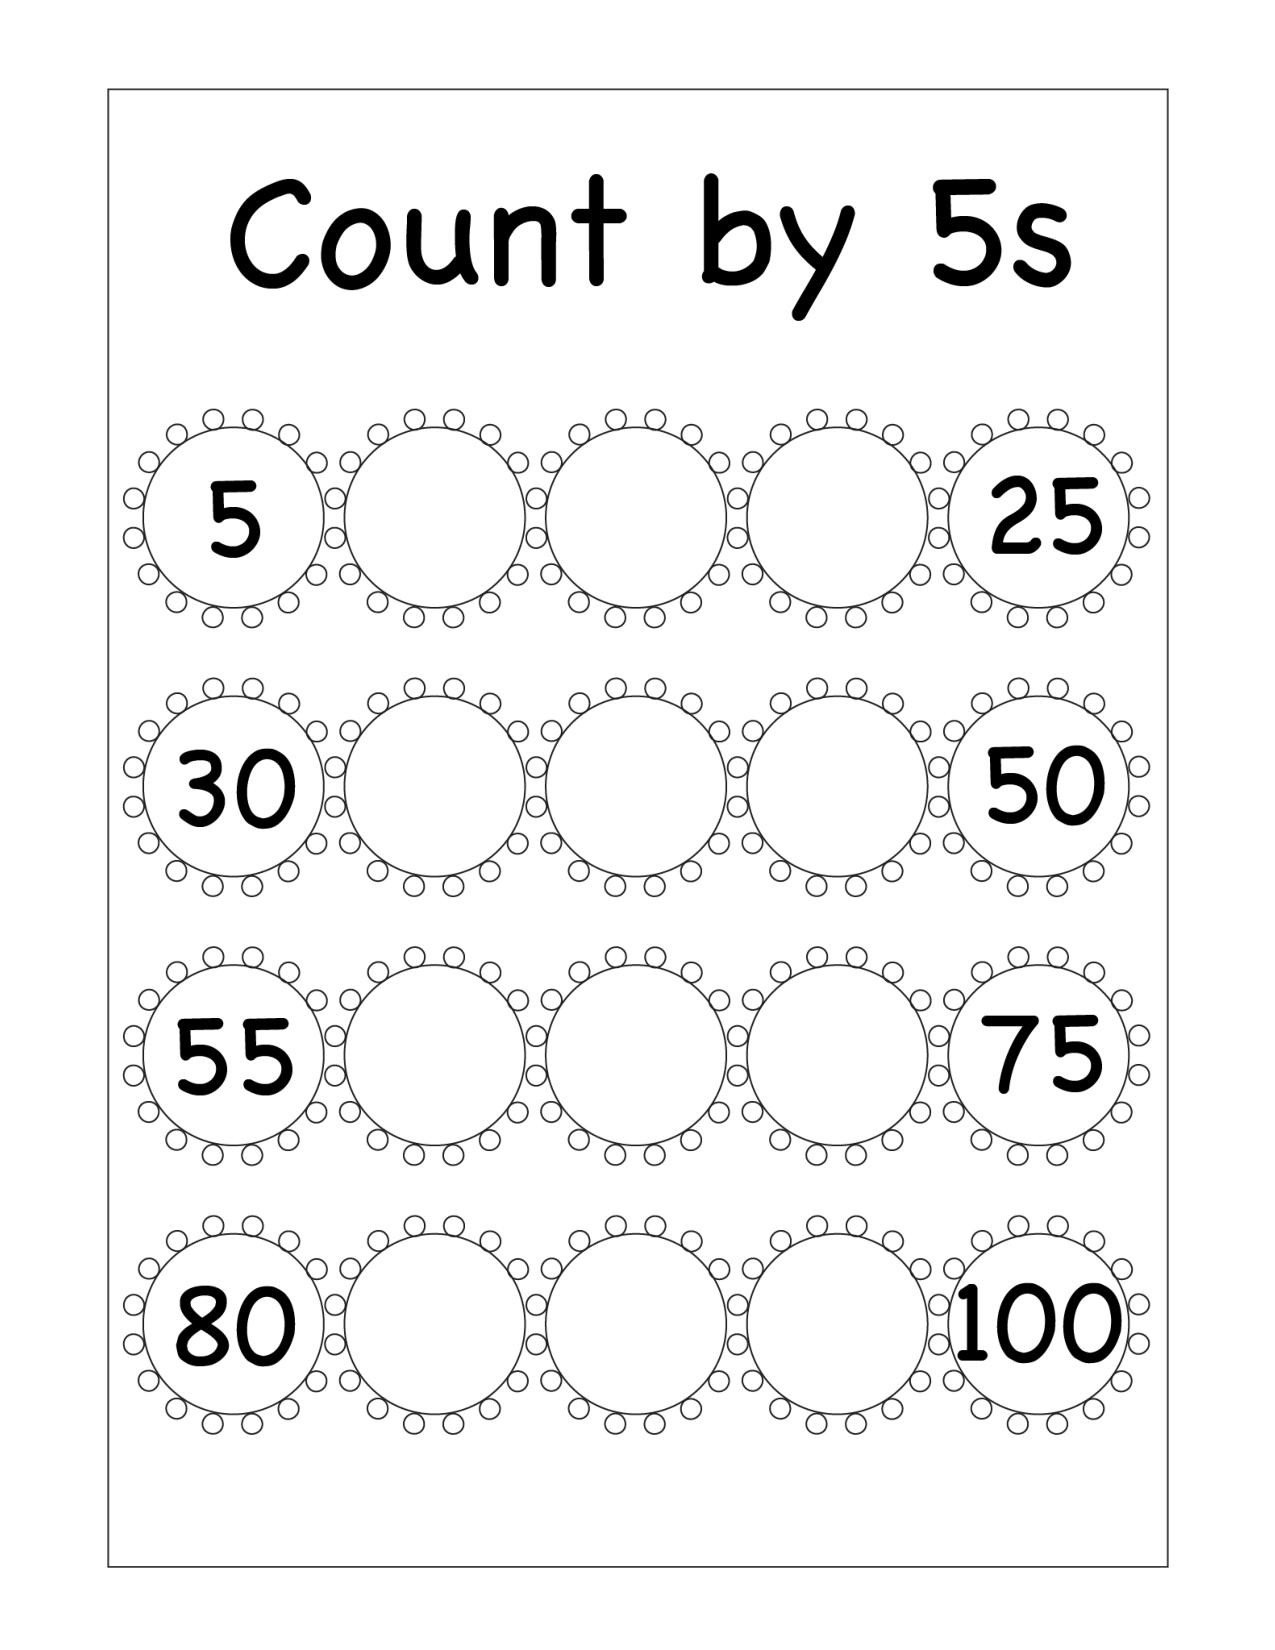 wfun15 countby5s flower 1 page 001